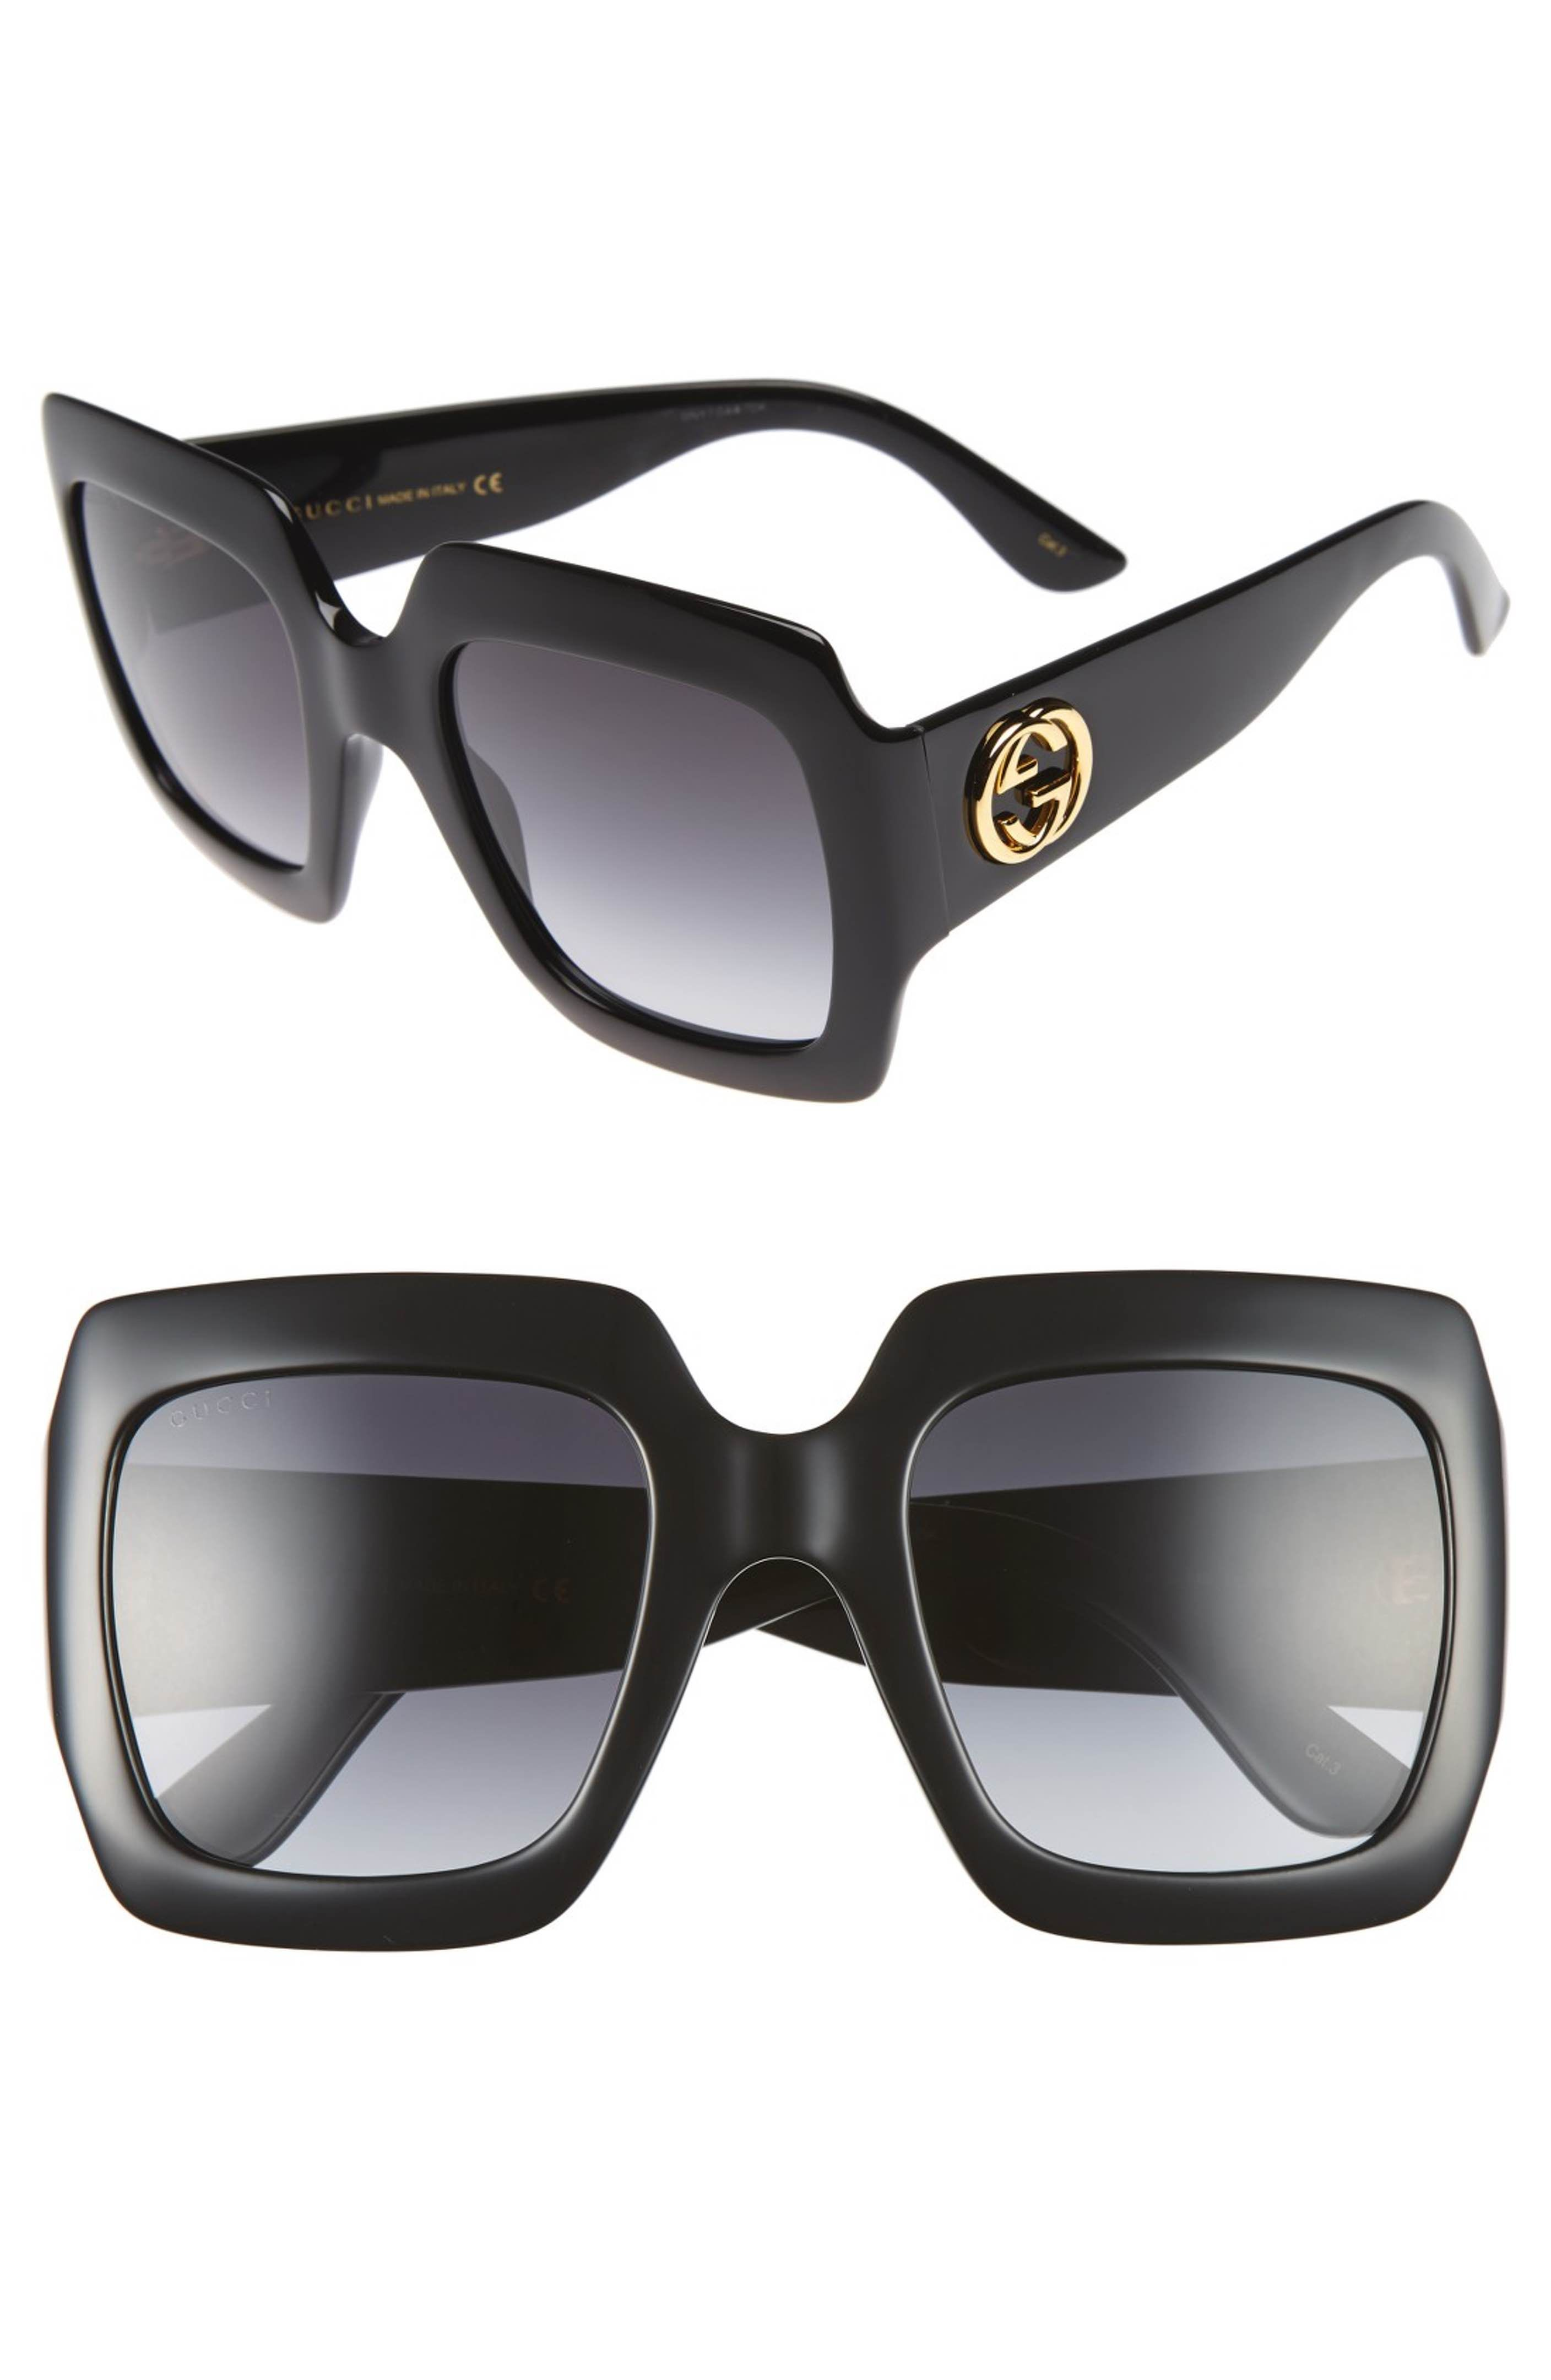 279ab48568 Main Image - Gucci 54mm Oversize Square Sunglasses - Sale! Up to 75% OFF!  Shop at Stylizio for women s and men s designer handbags